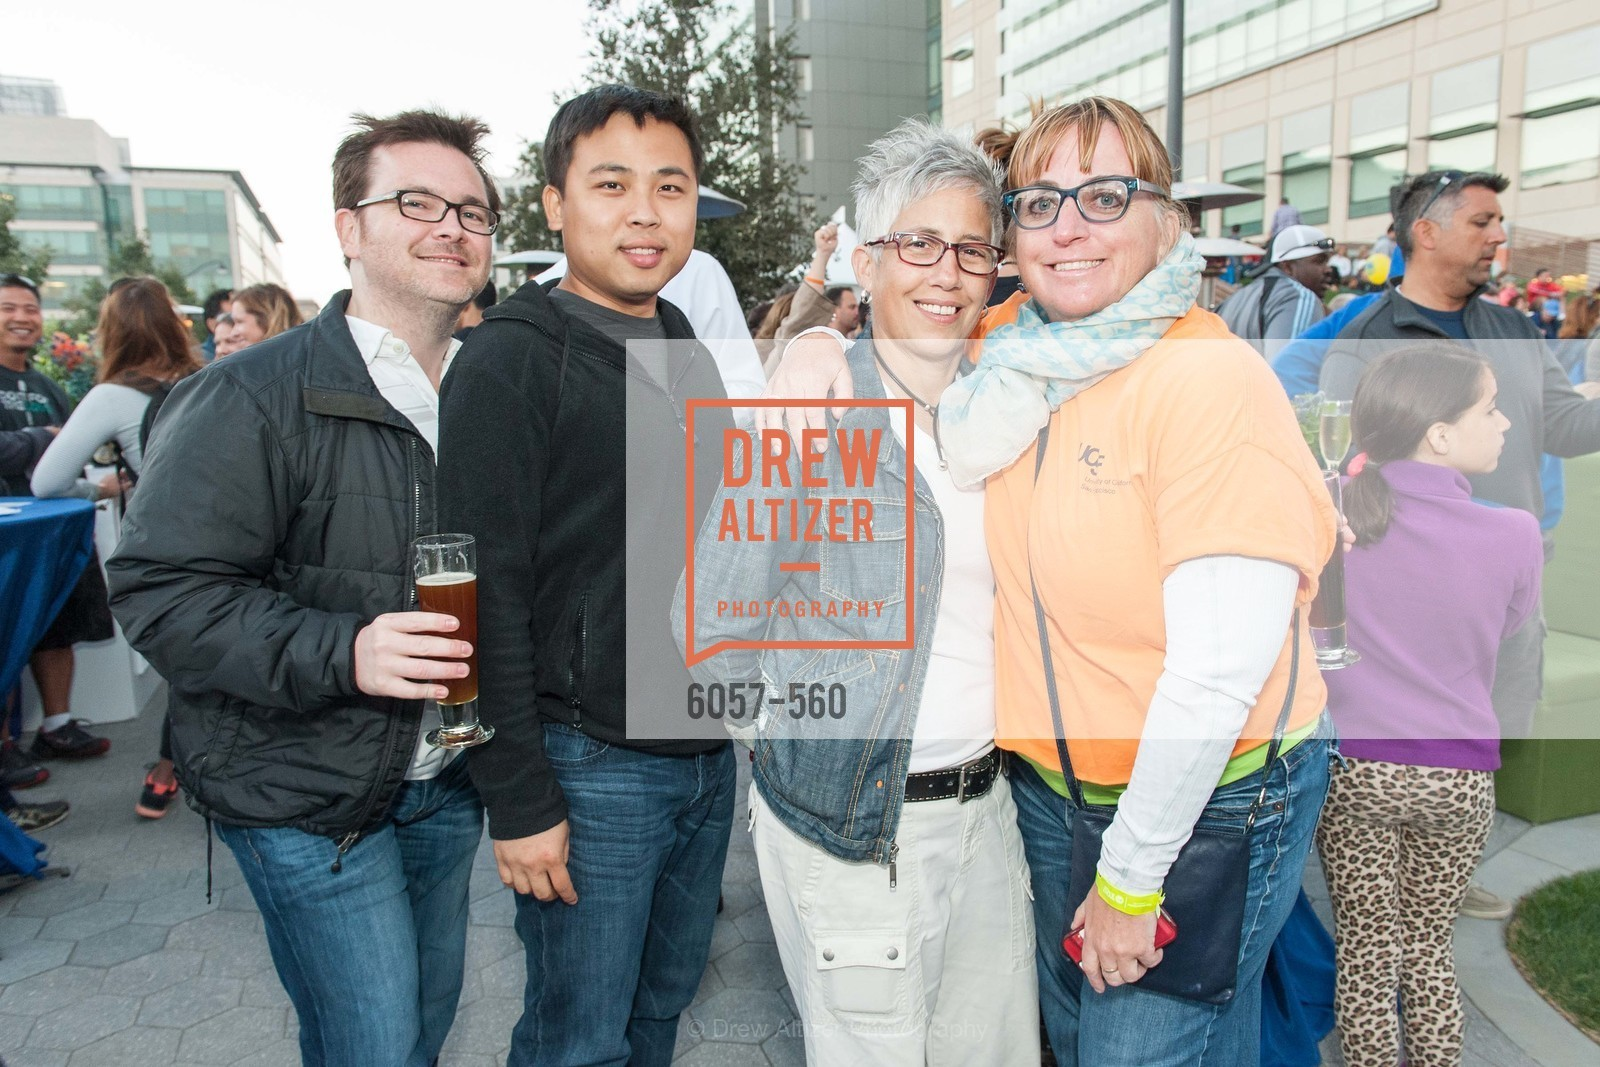 Rob Hatkins, Bao Nguyen, Marie Pompa, Jen Dowd, UCSF Medical Center HARD HAT WALK & LIGHTS ON FESTIVAL, US, September 6th, 2014,Drew Altizer, Drew Altizer Photography, full-service agency, private events, San Francisco photographer, photographer california